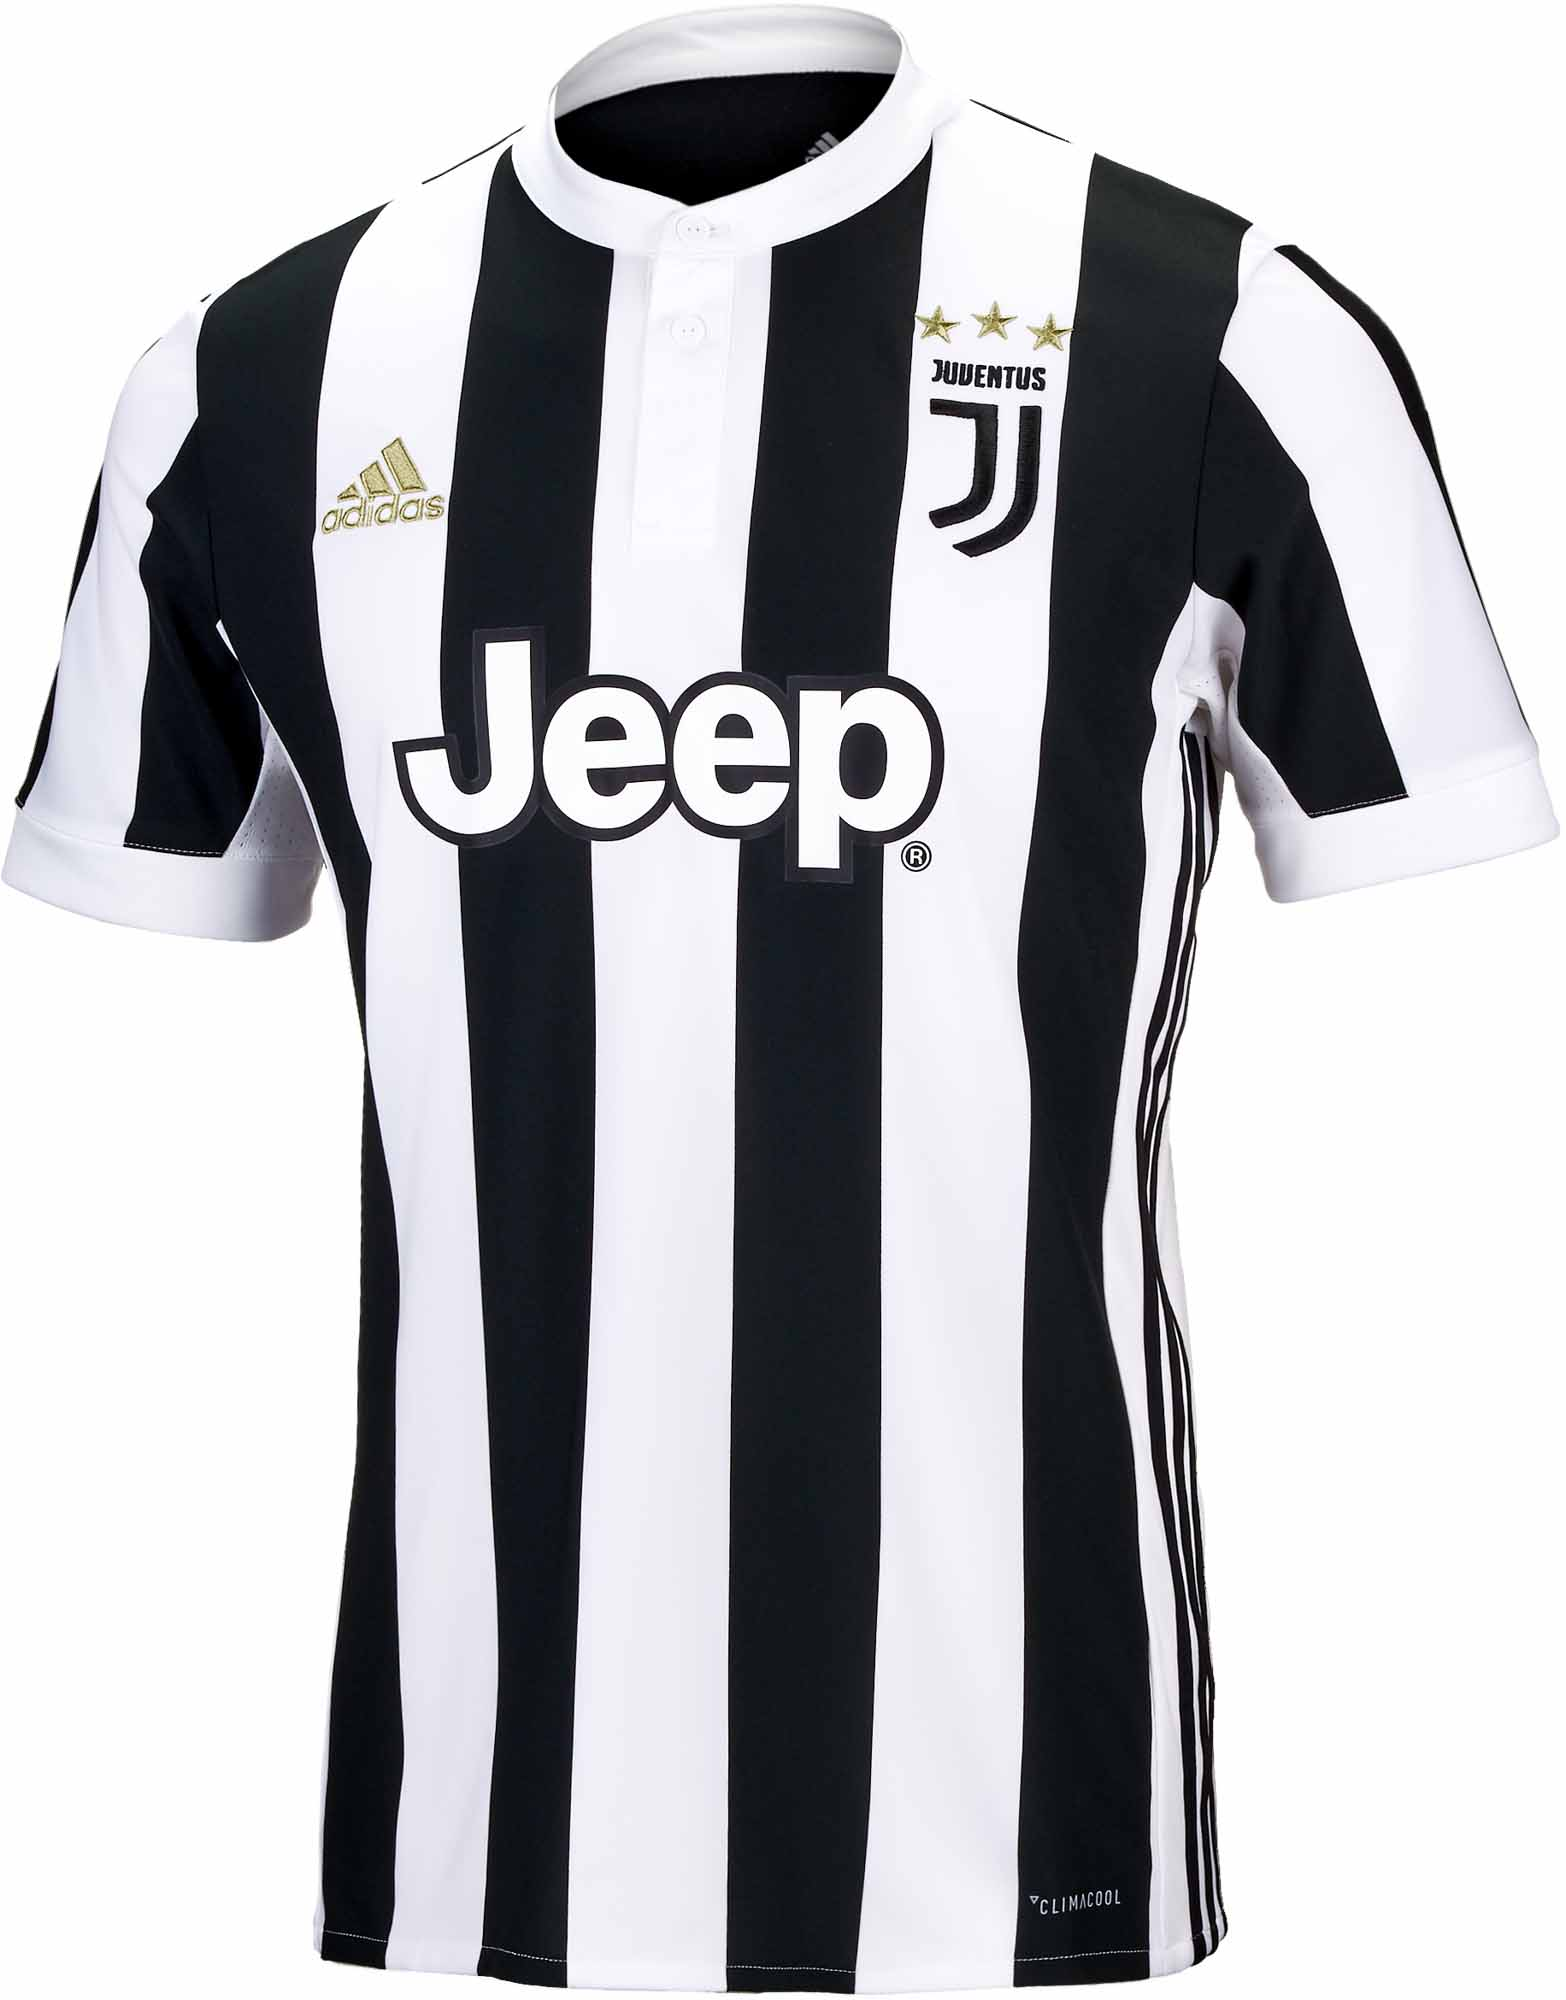 92432d61457 ... juventus third kit 2017 18